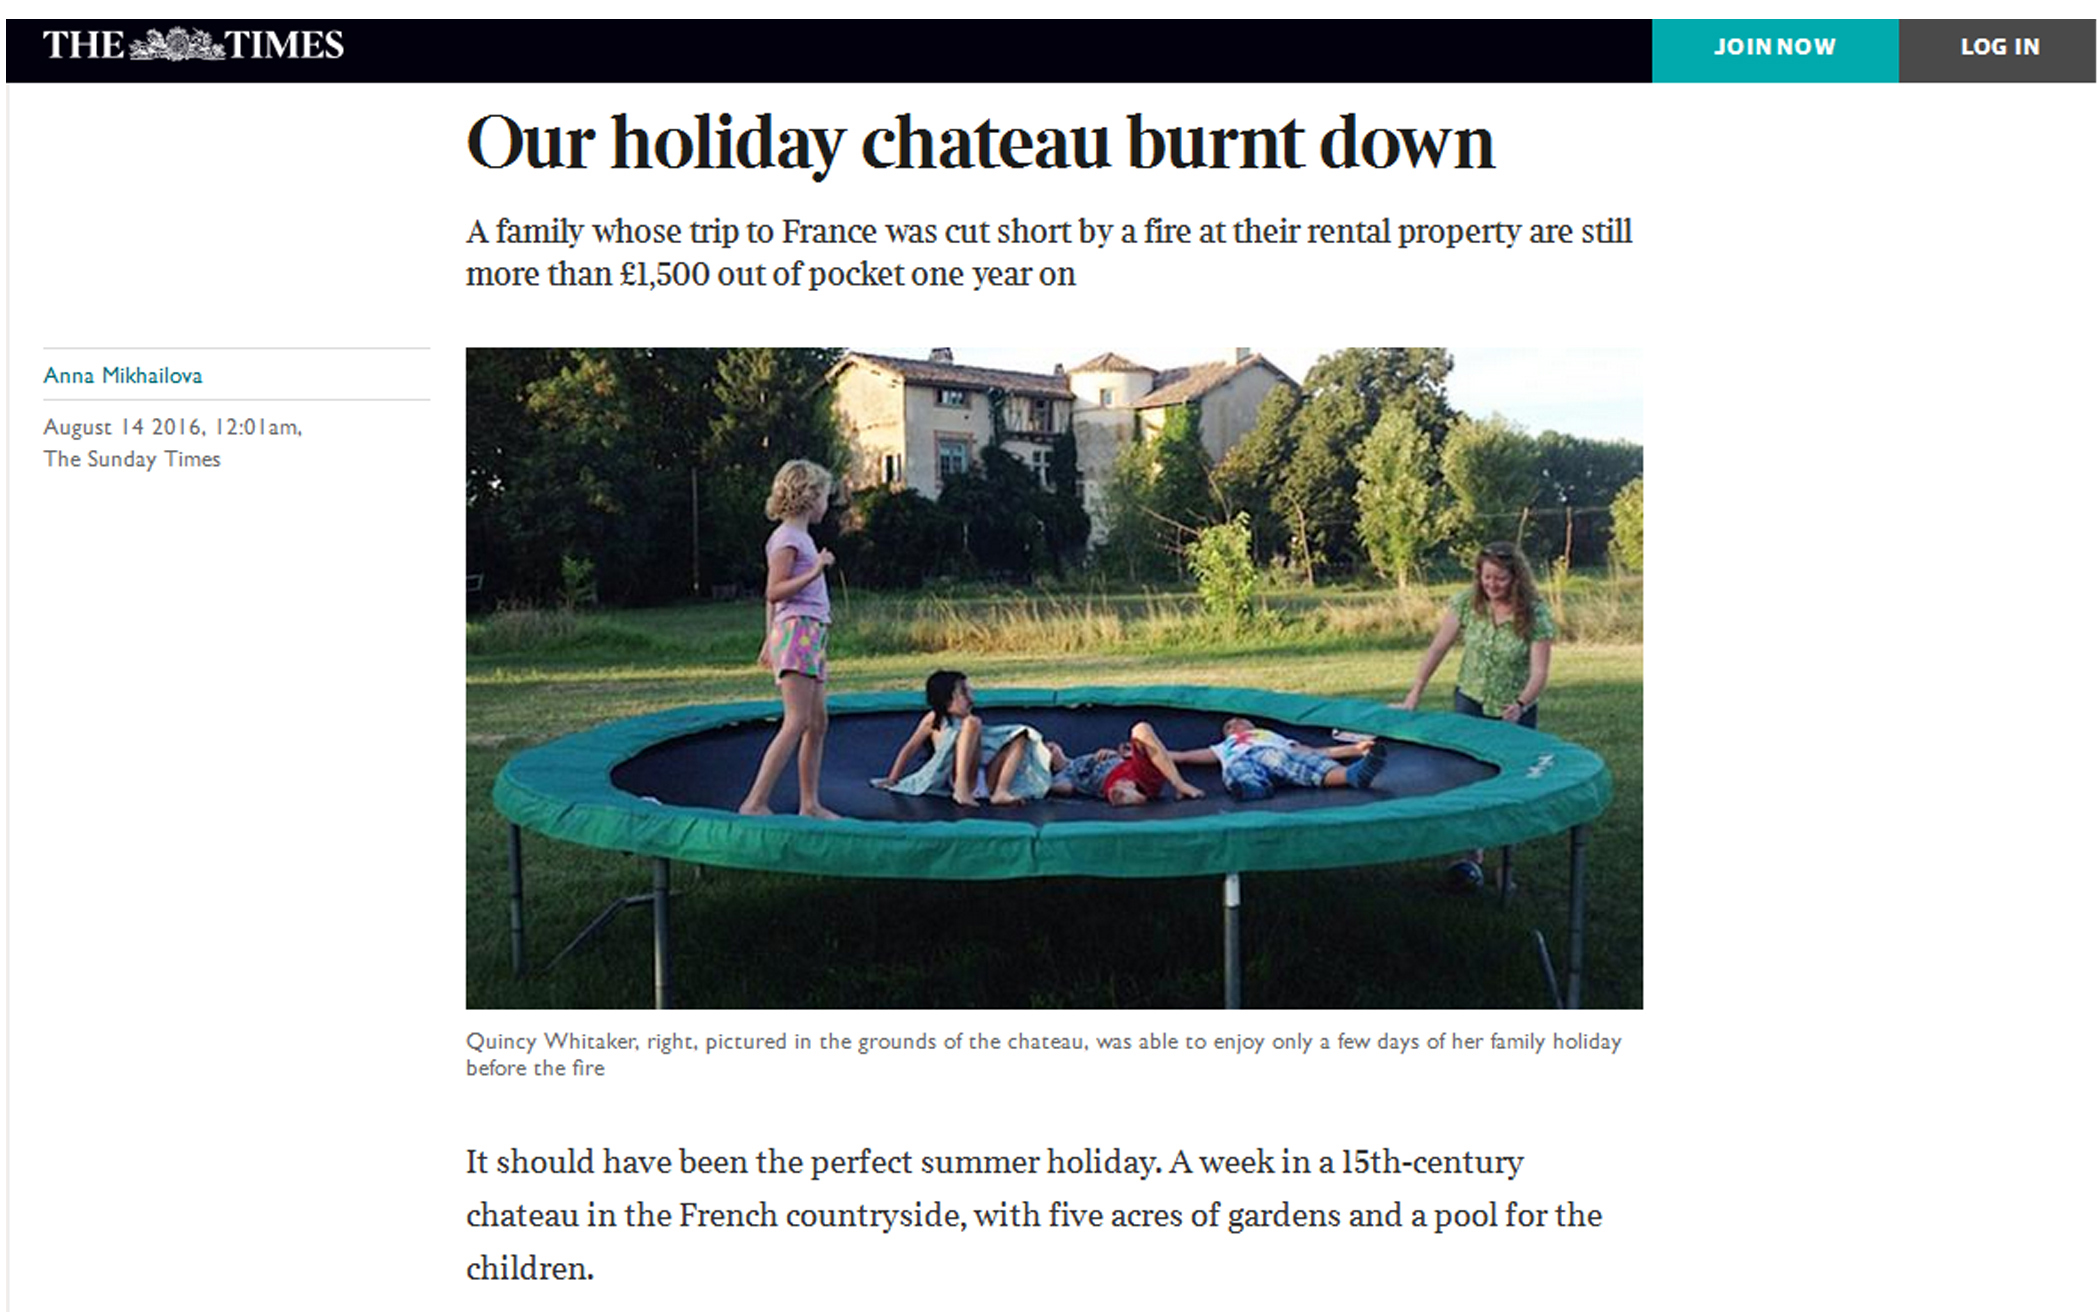 160814_Our holiday chateau burnt down_1